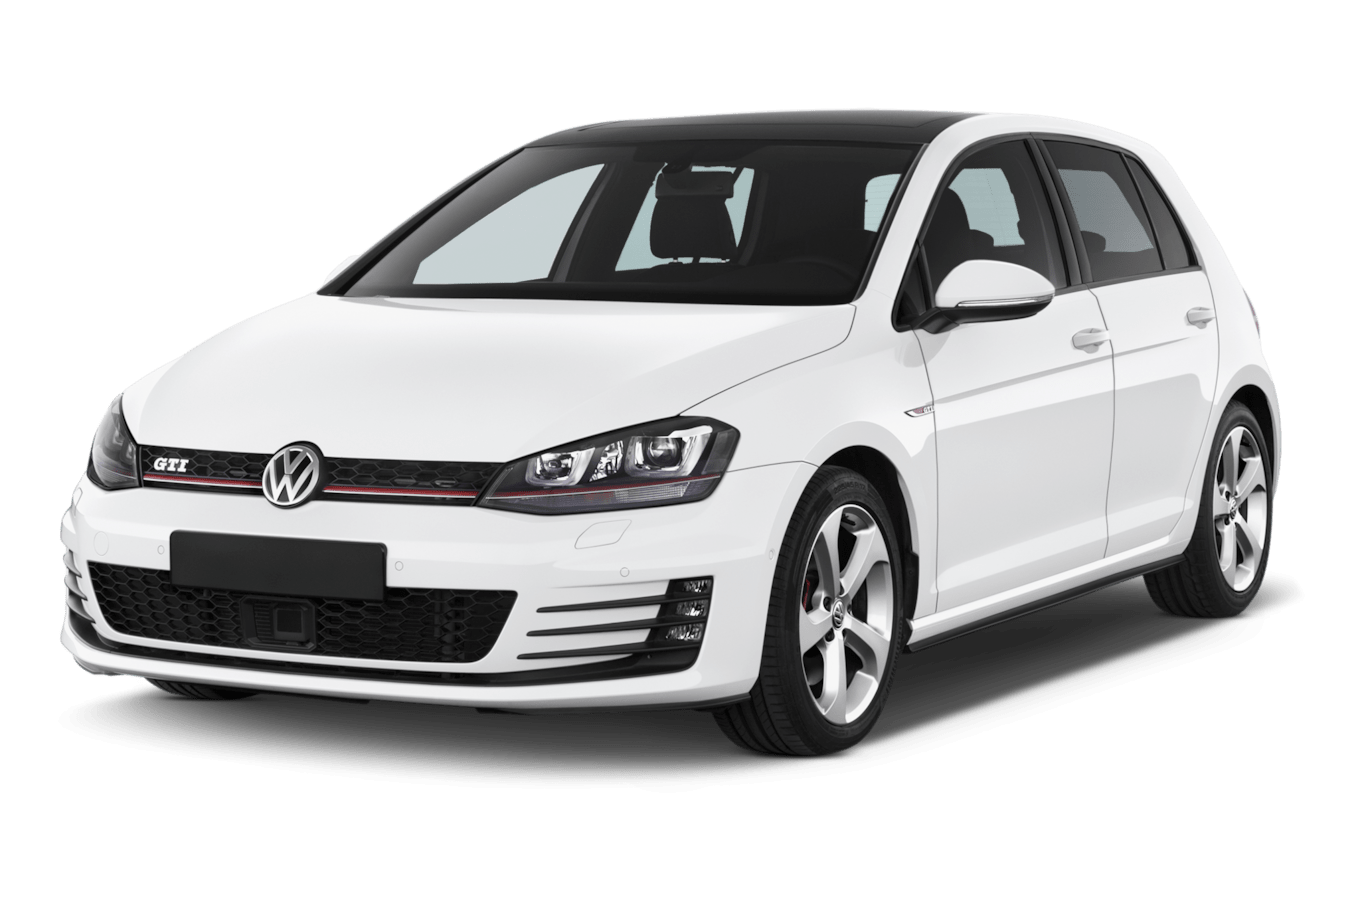 hight resolution of 2014 vw gti engine parts diagram wiring diagram sheet 2015 volkswagen gti reviews research gti prices